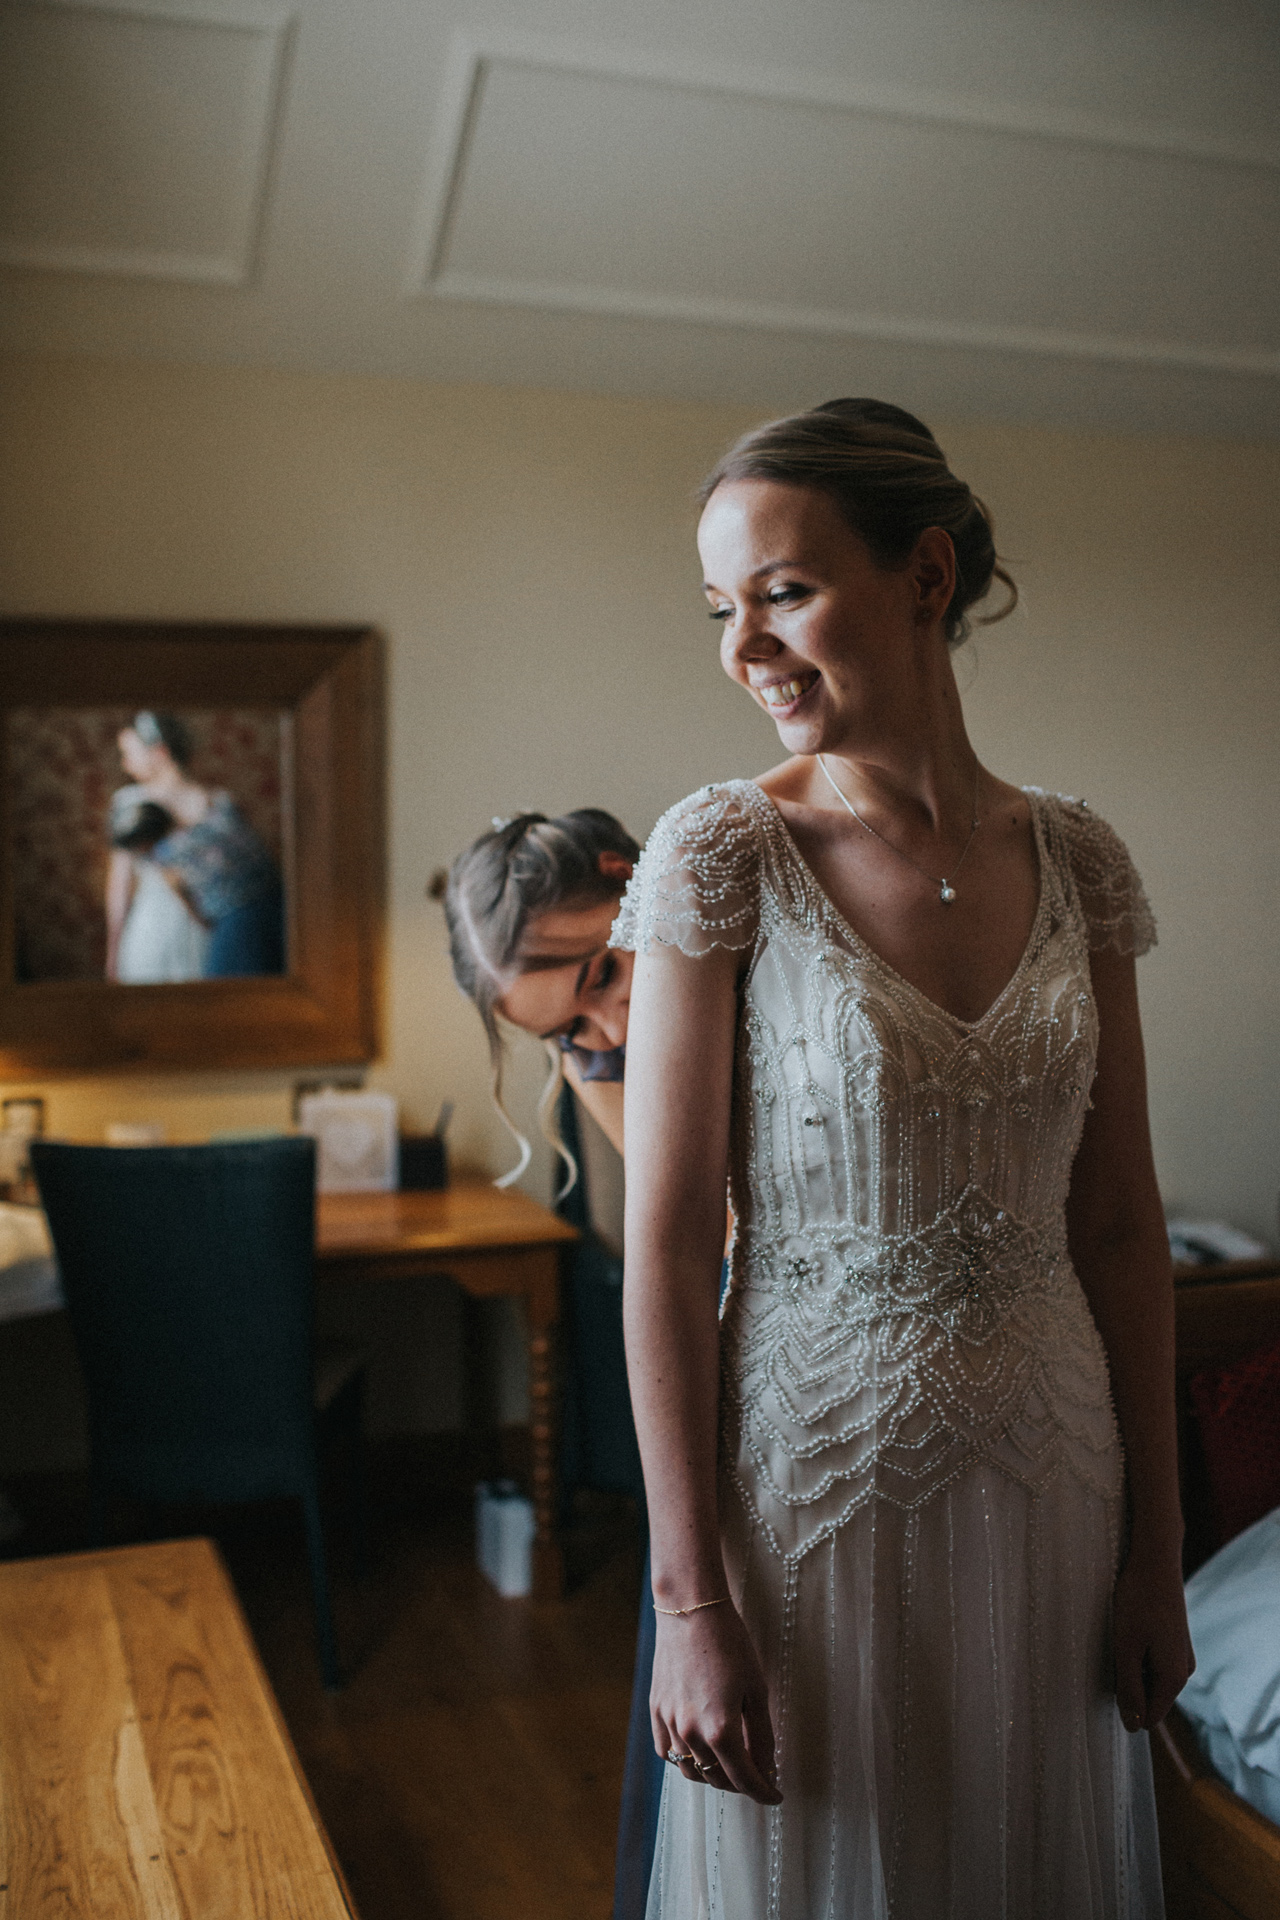 Bride stands smiling while wearing her wedding dress.